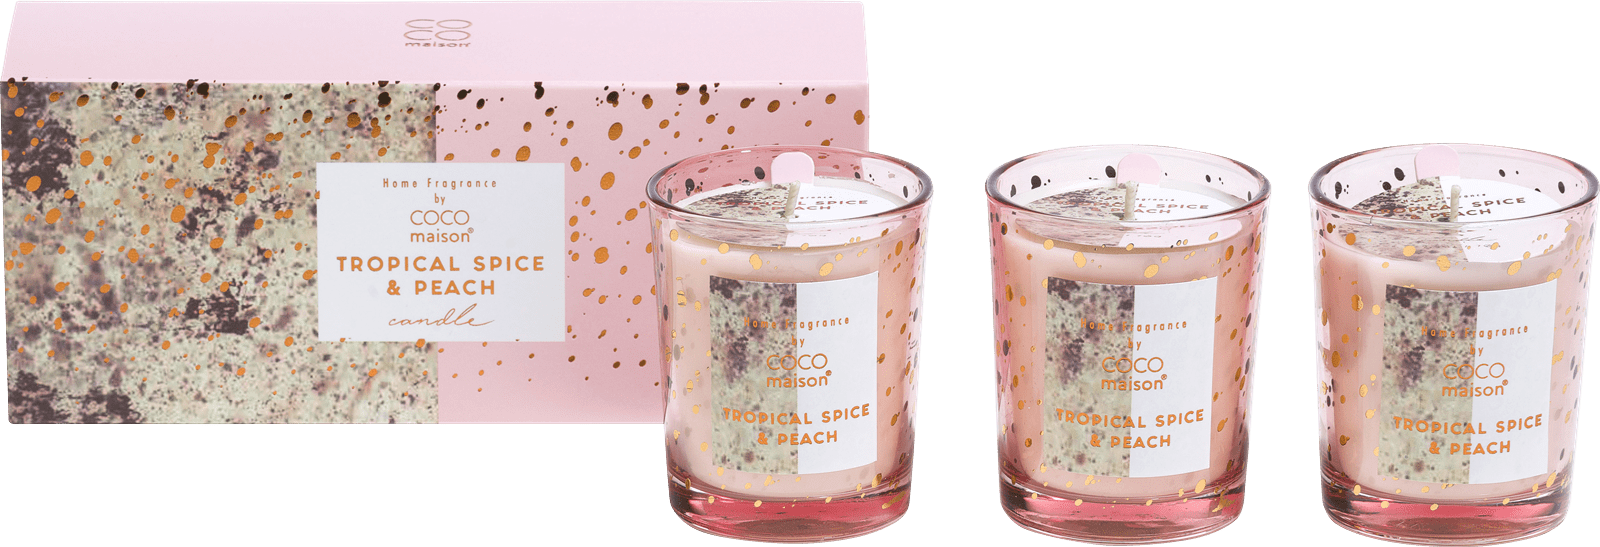 XOOON - Coco Maison - box with 3 scented candles tropical spice & peach